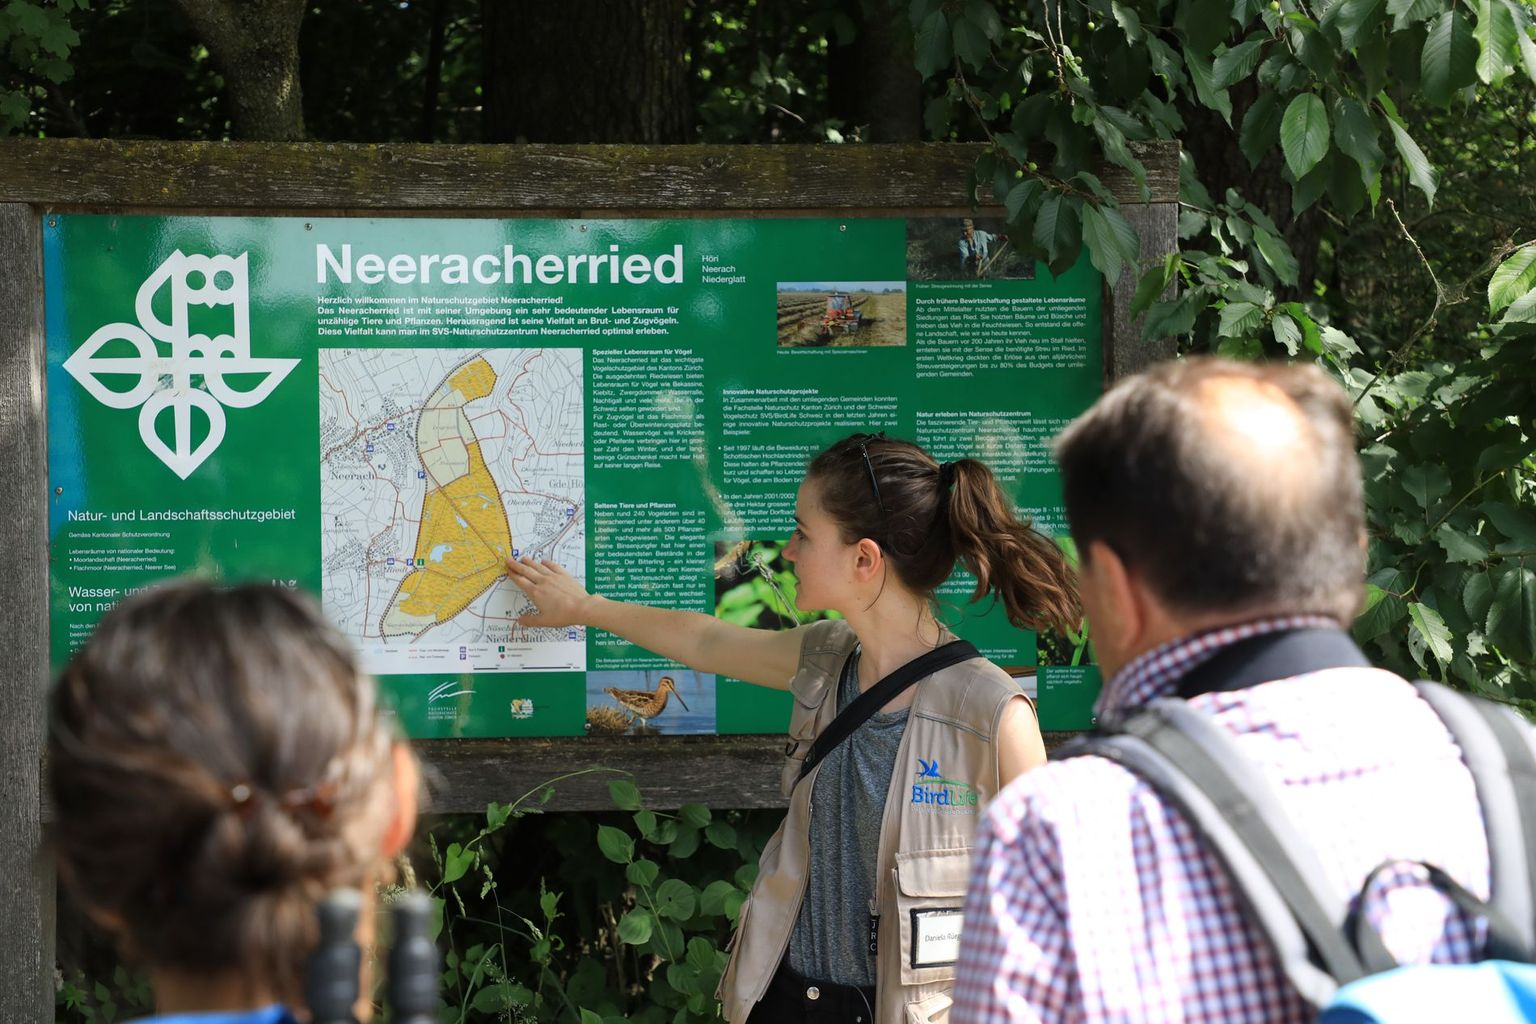 Neeracherried (Bild 02)